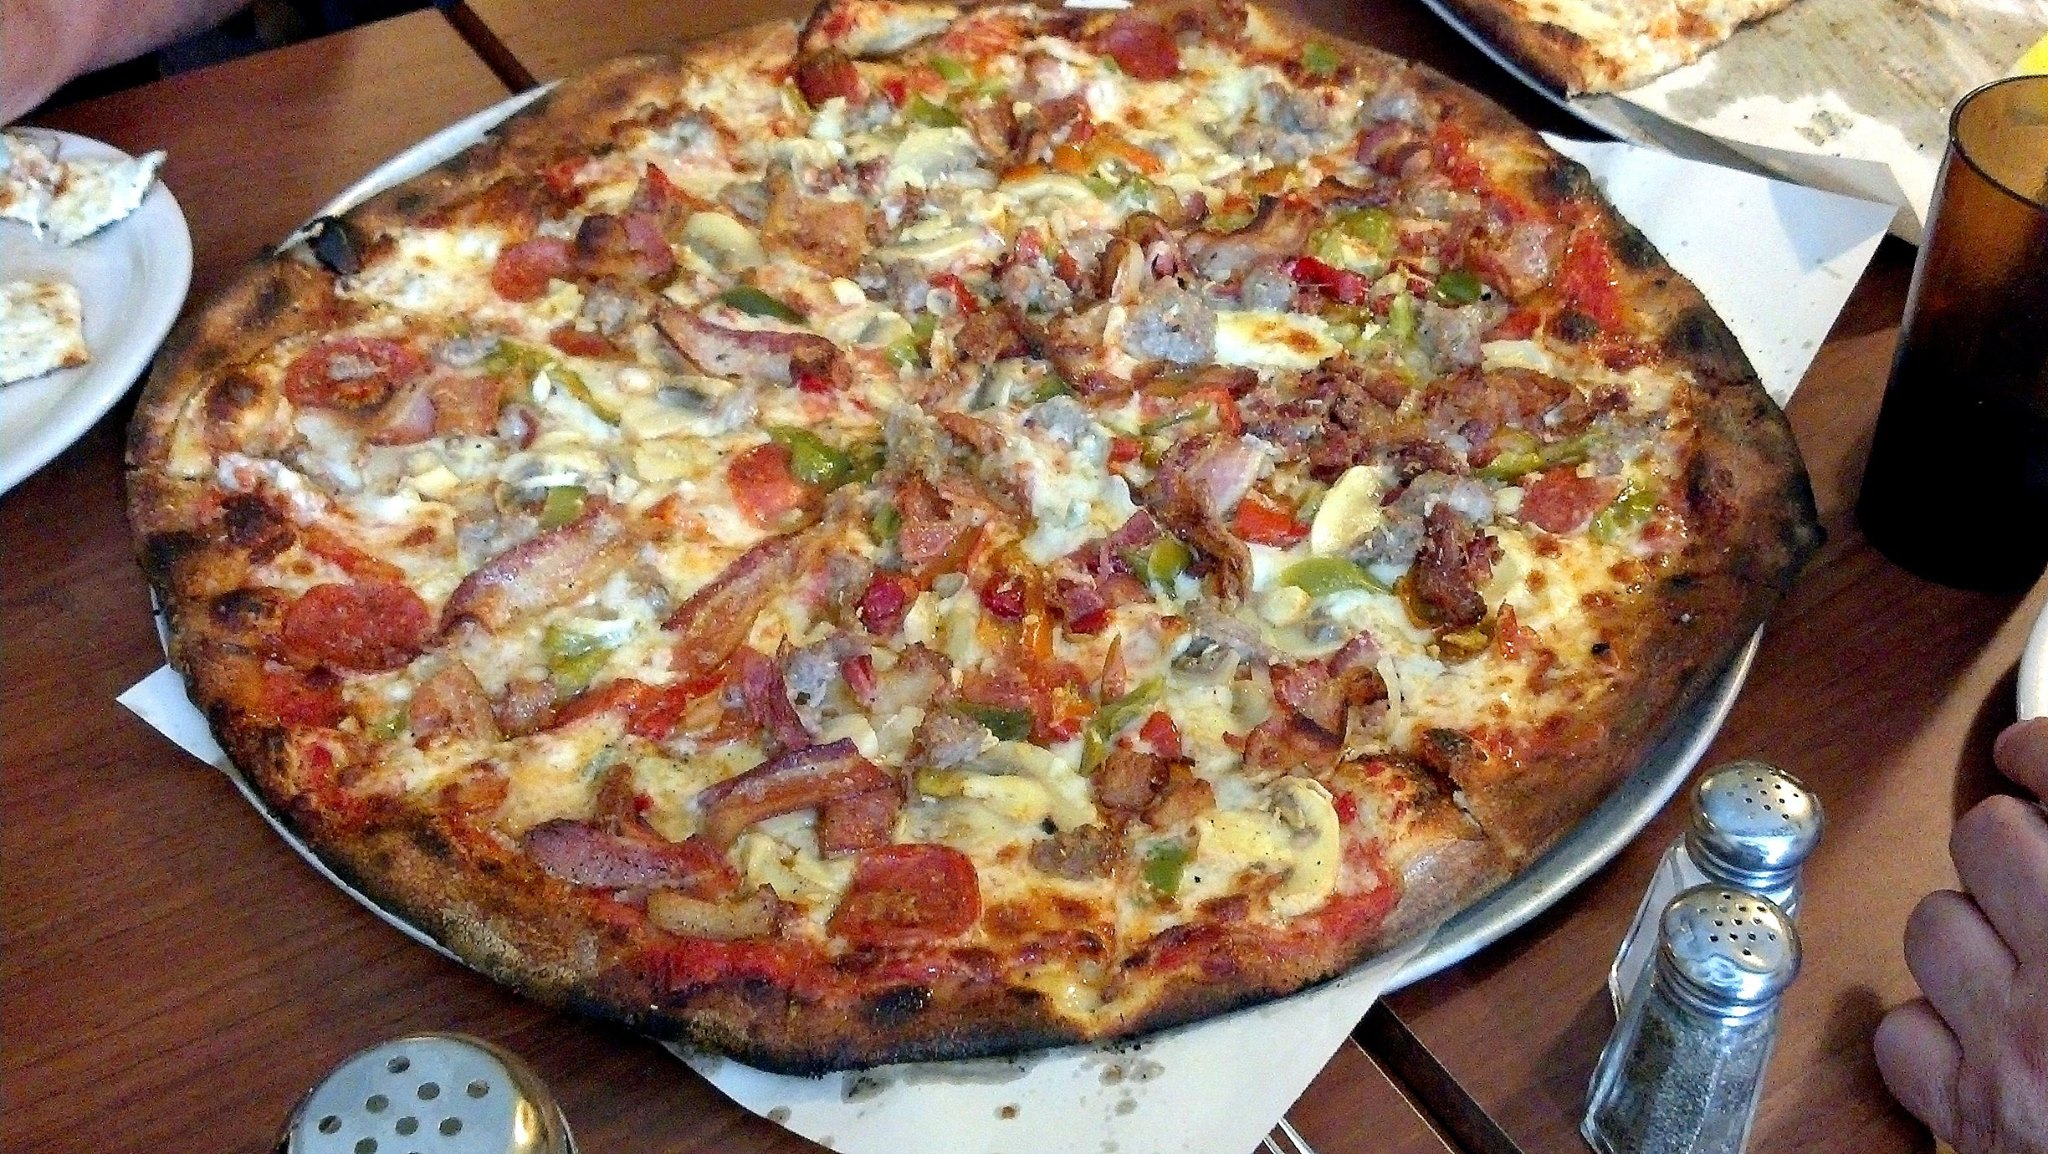 The Italian Bomb from Modern Apizza of New Haven: bacon, sausage, pepperoni, mushrooms, onions, peppers, and garlic